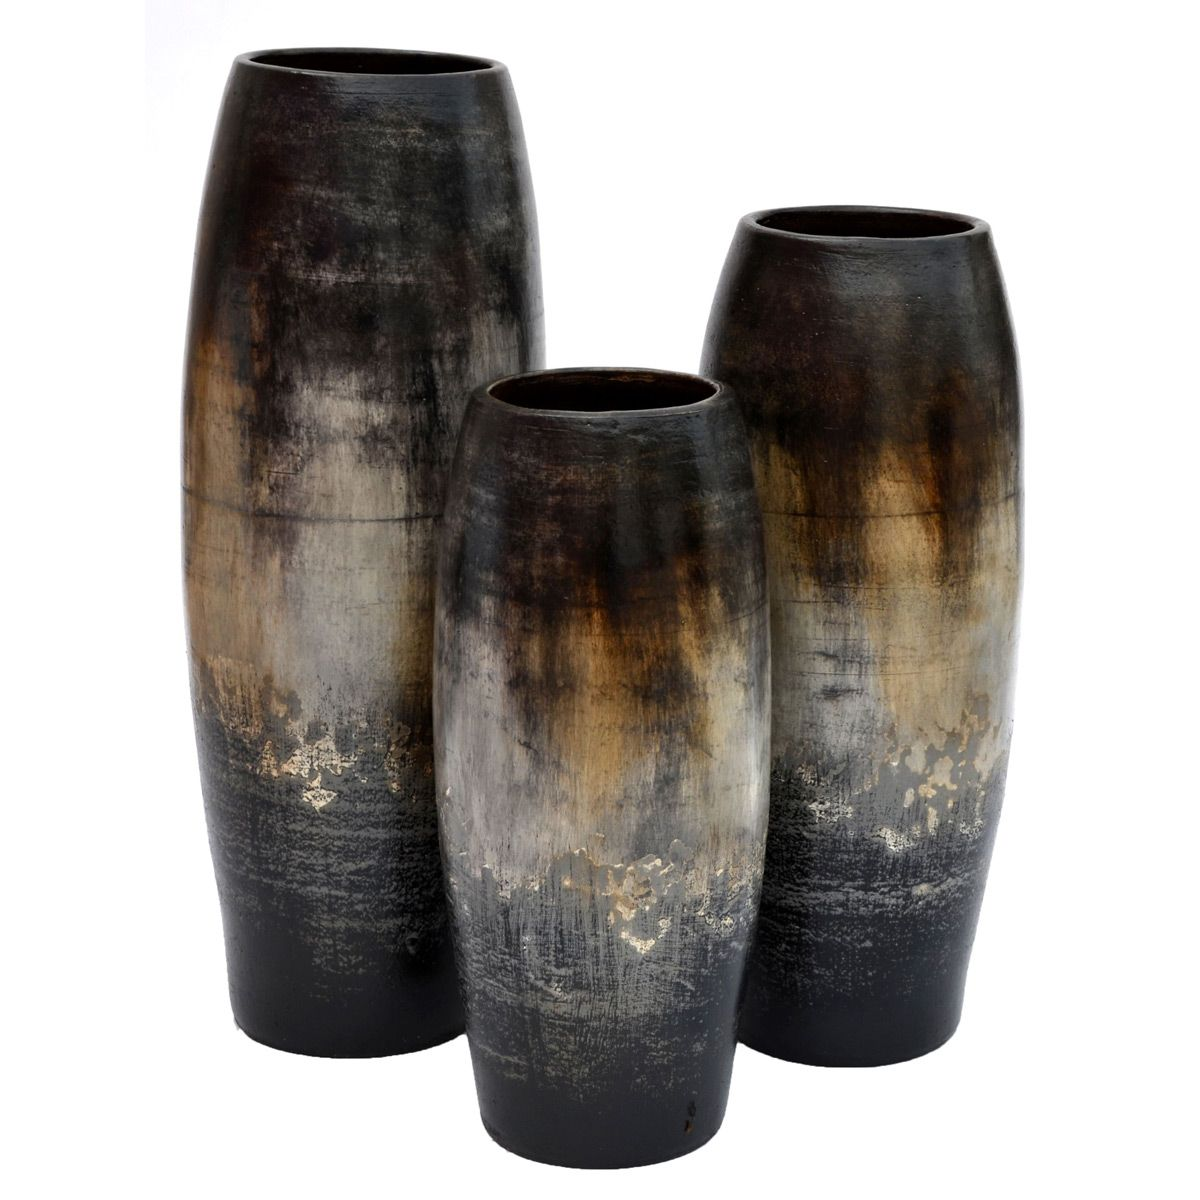 Camino Black Vases - Set of 3